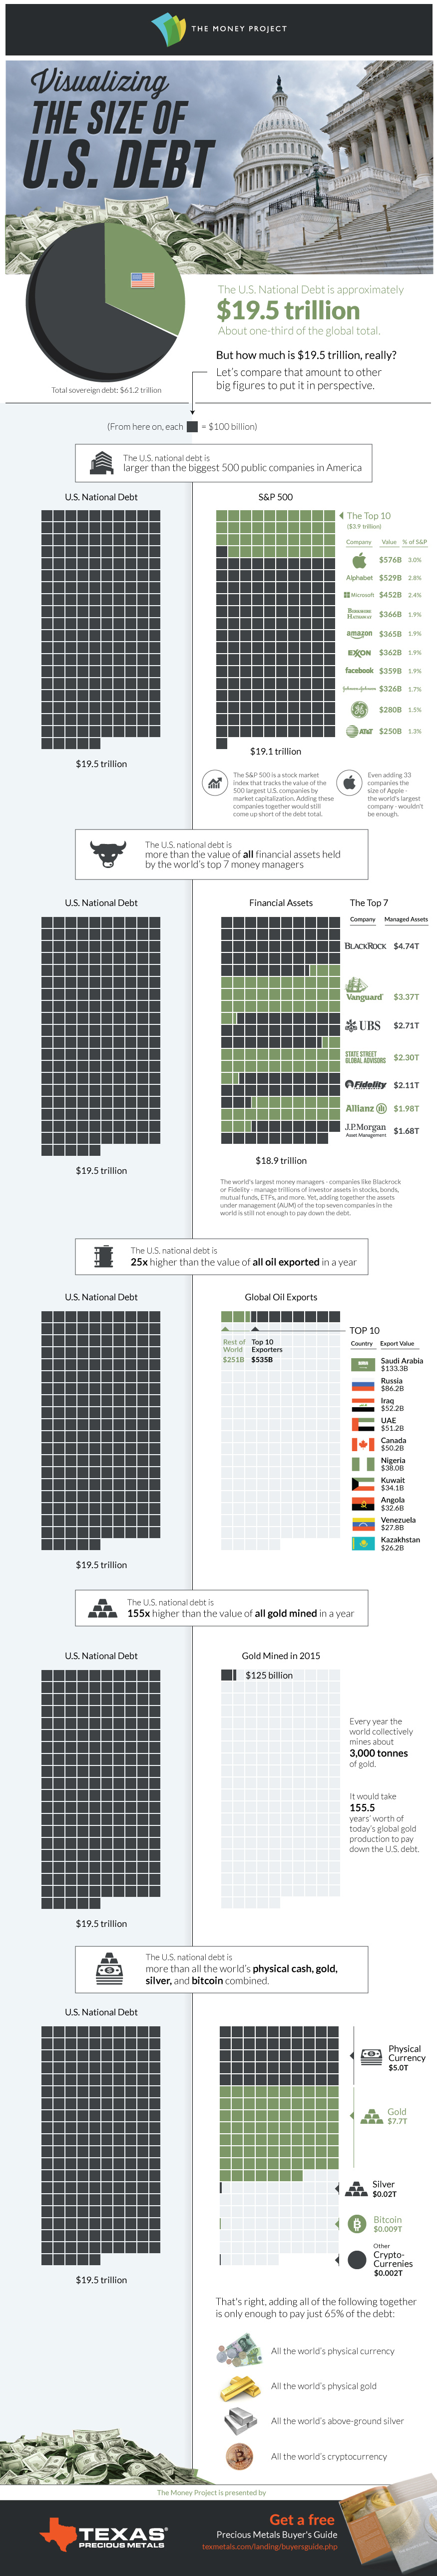 Visualizing the Size of the U.S. National Debt